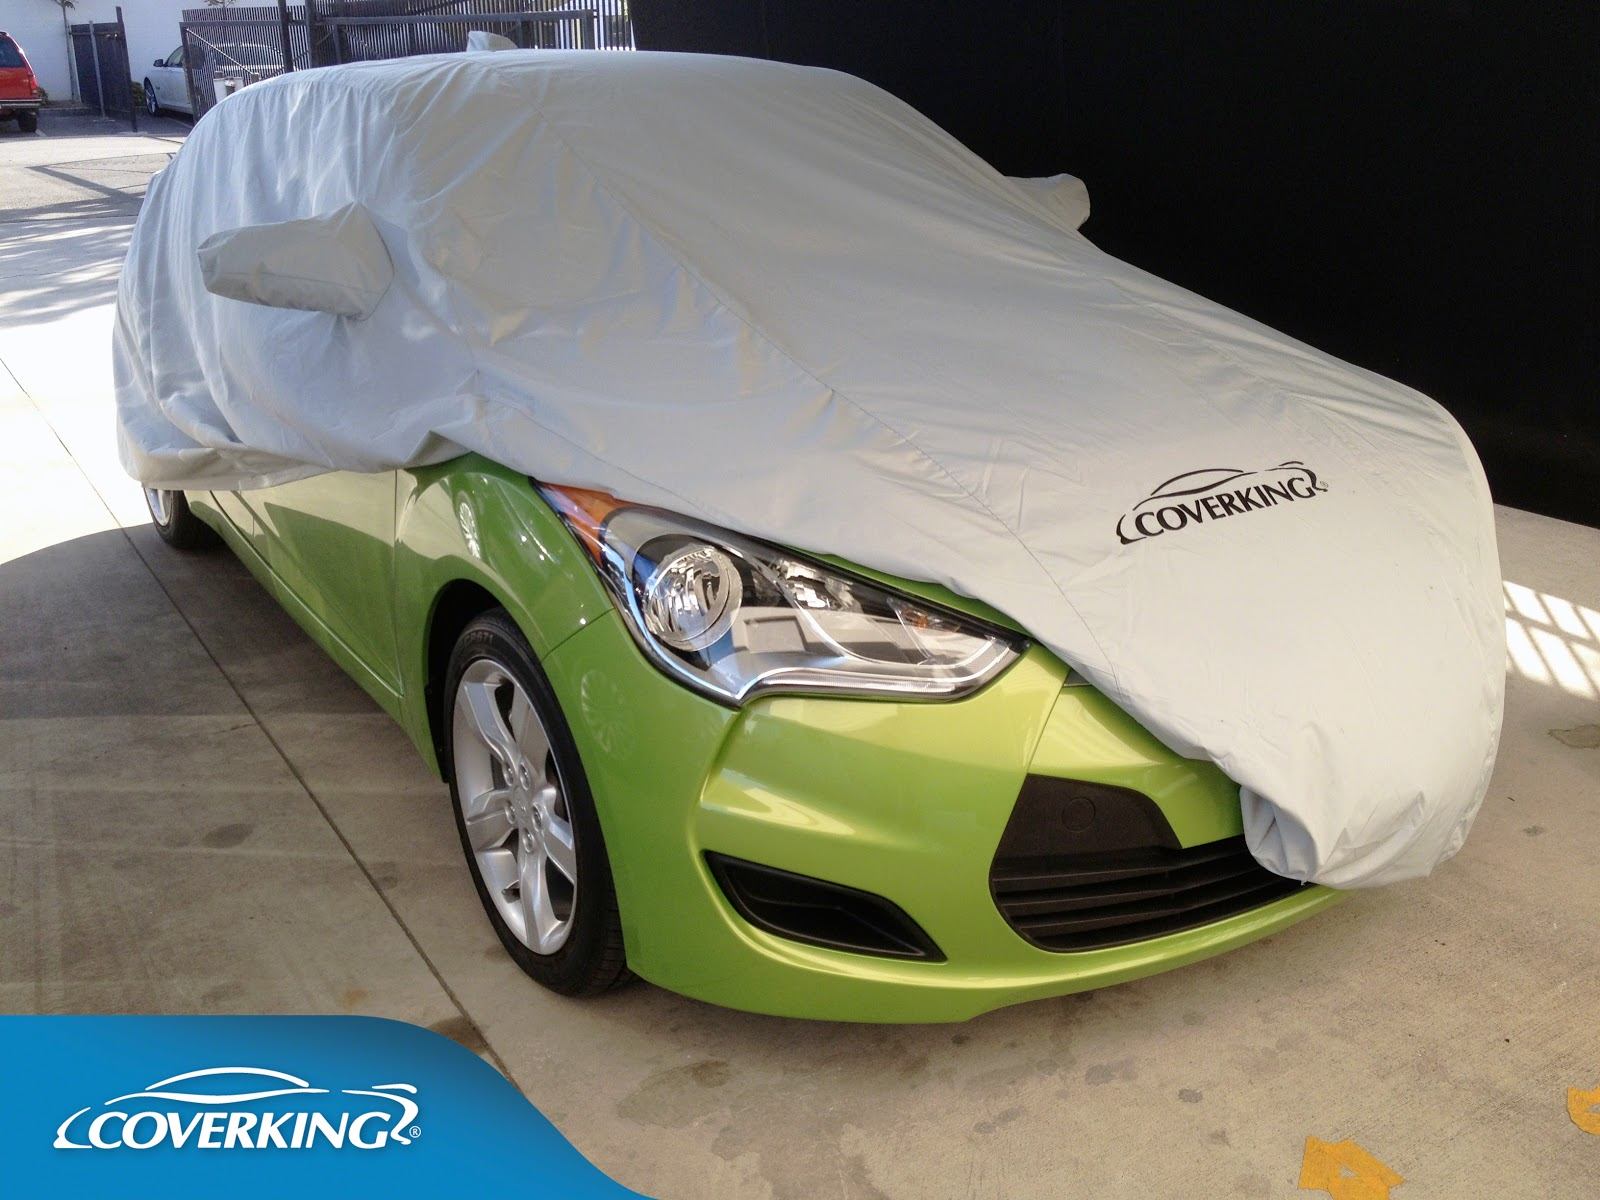 Hyundai Veloster Accessories New Products For The Hyundai Veloster From Coverking Coverking Blog